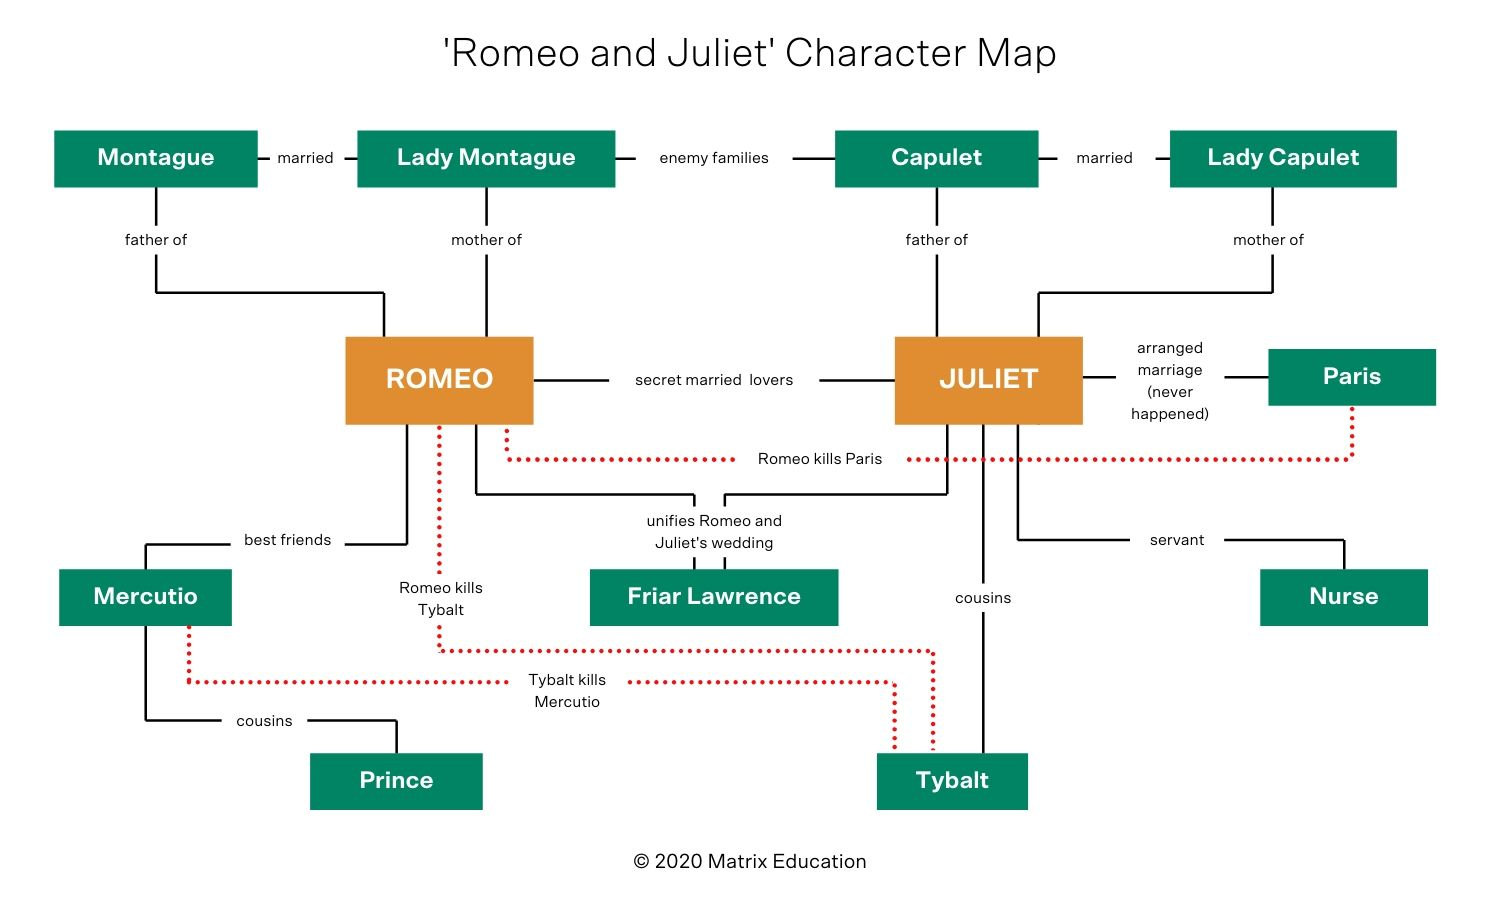 blog-english-the-ultimate-romeo-and-juliet-overview-character-map-1